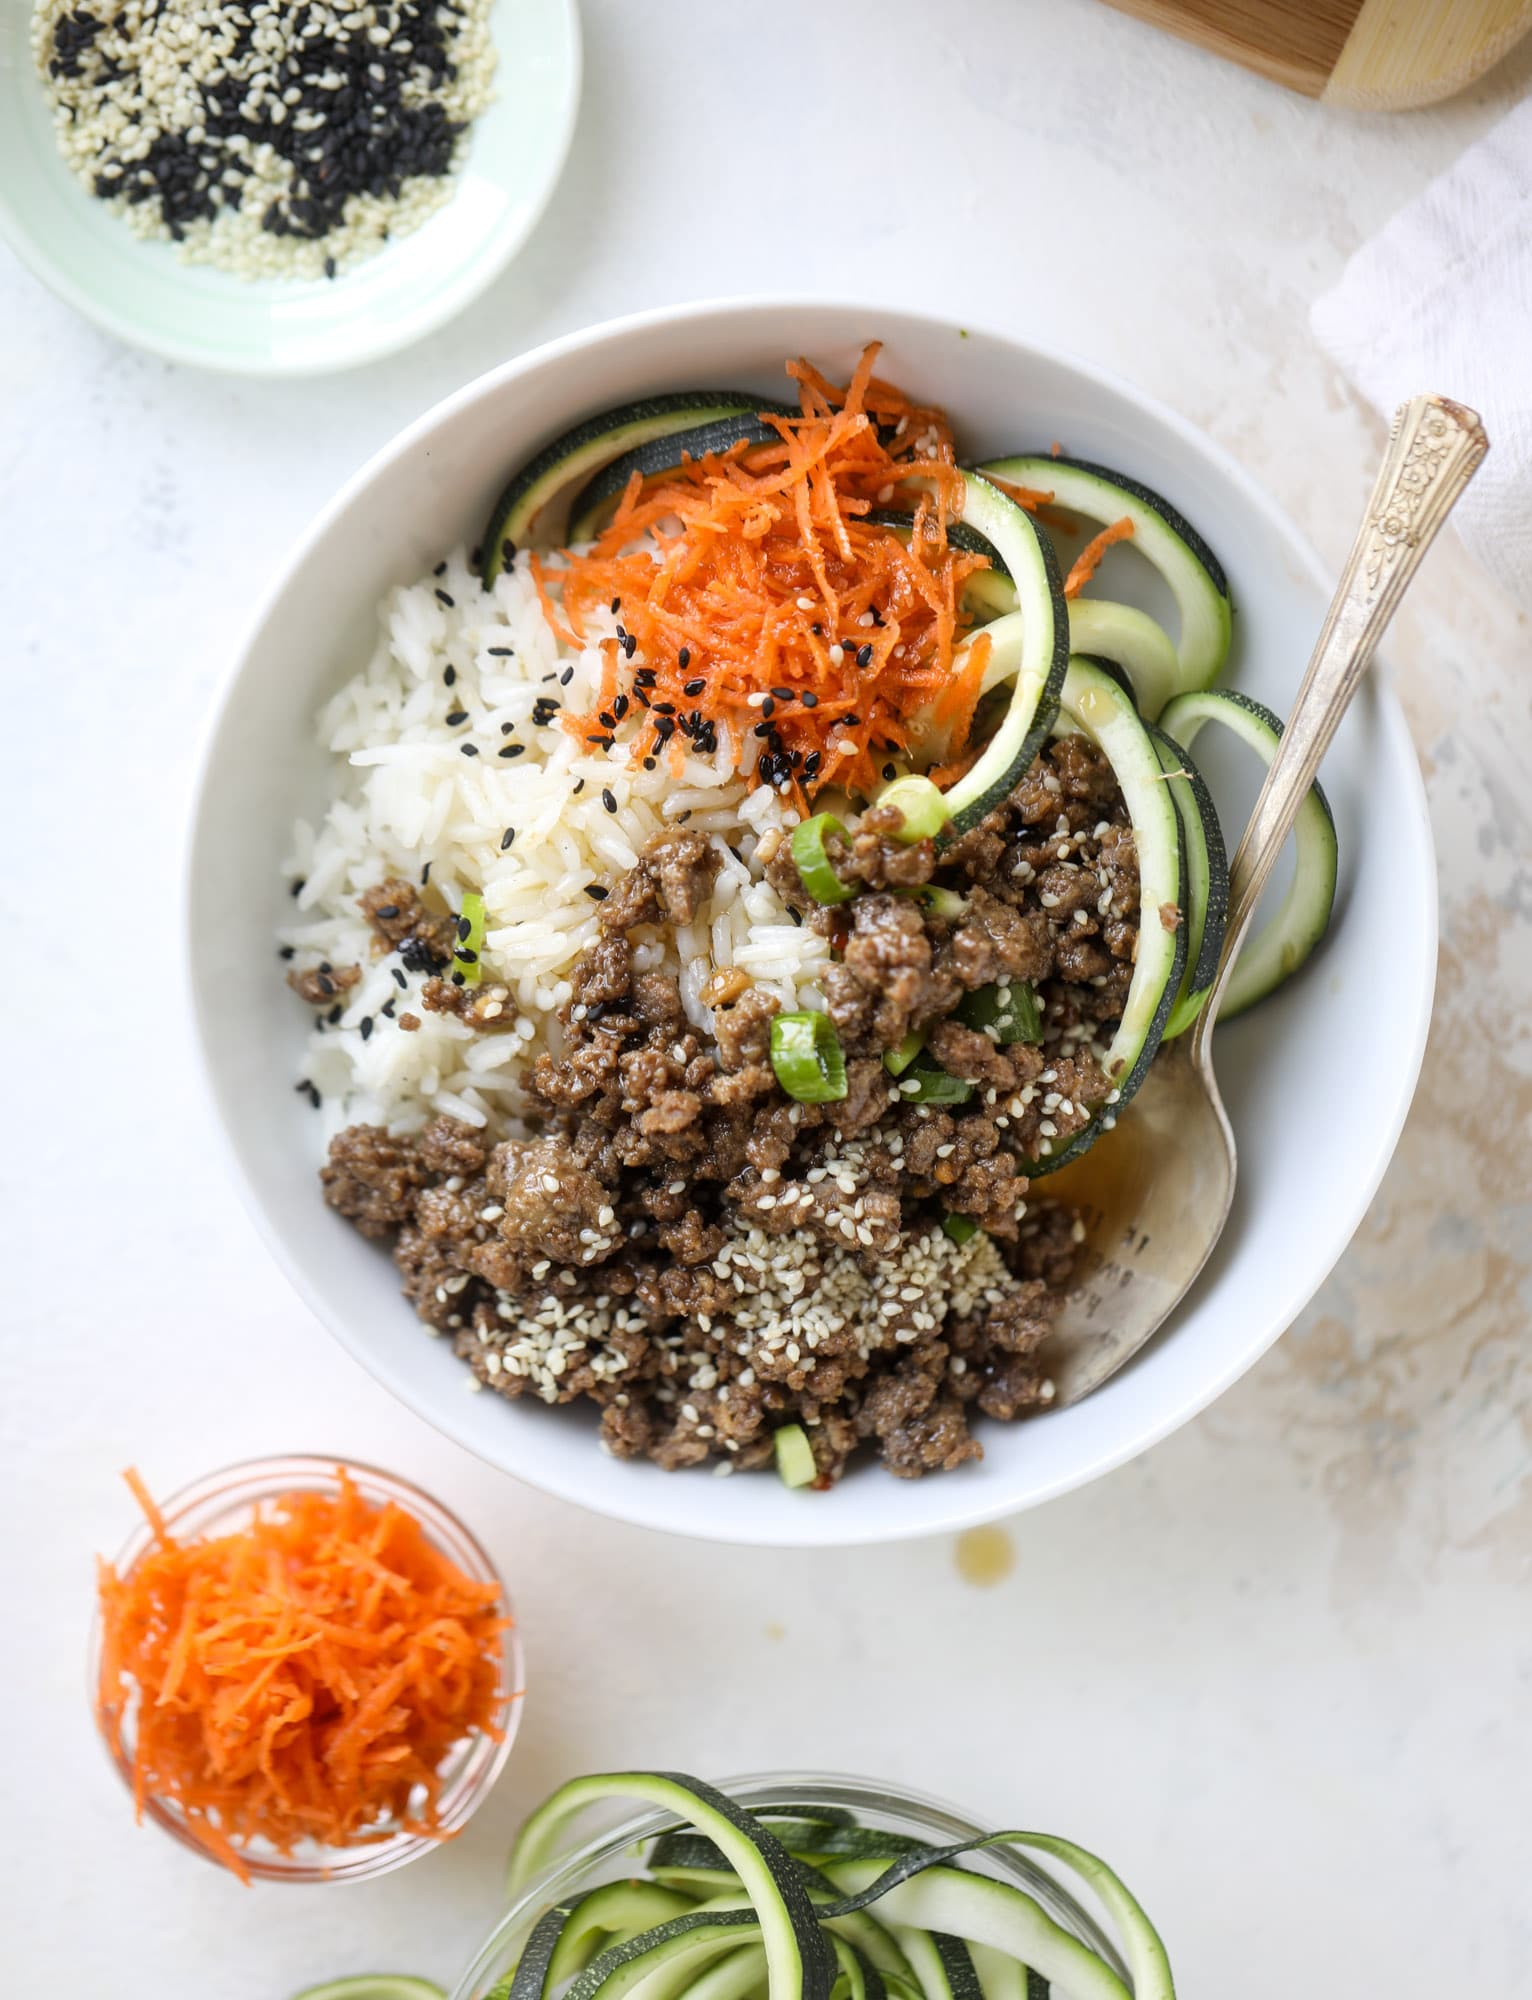 These korean beef bowls are so packed full of flavor that you won't want to eat anything else! Serve the beef with zucchini noodles, grated carrot and jasmine rice for a satisfying, flavor-packed bowl that comes together easily and quick! I howsweeteats.com #korean #beef